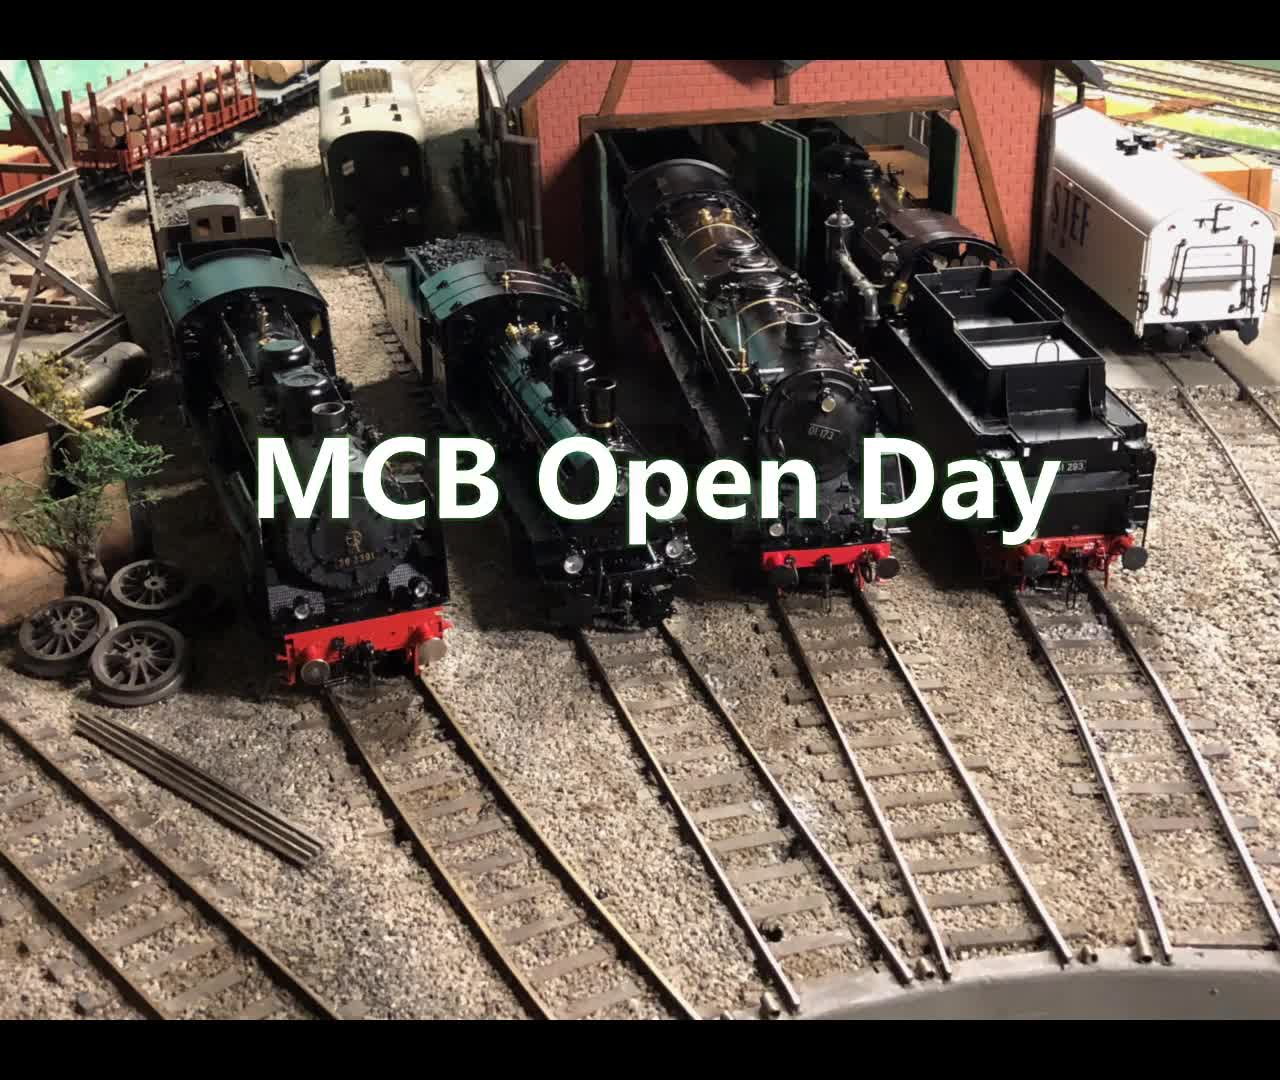 MCB Open Day 2019